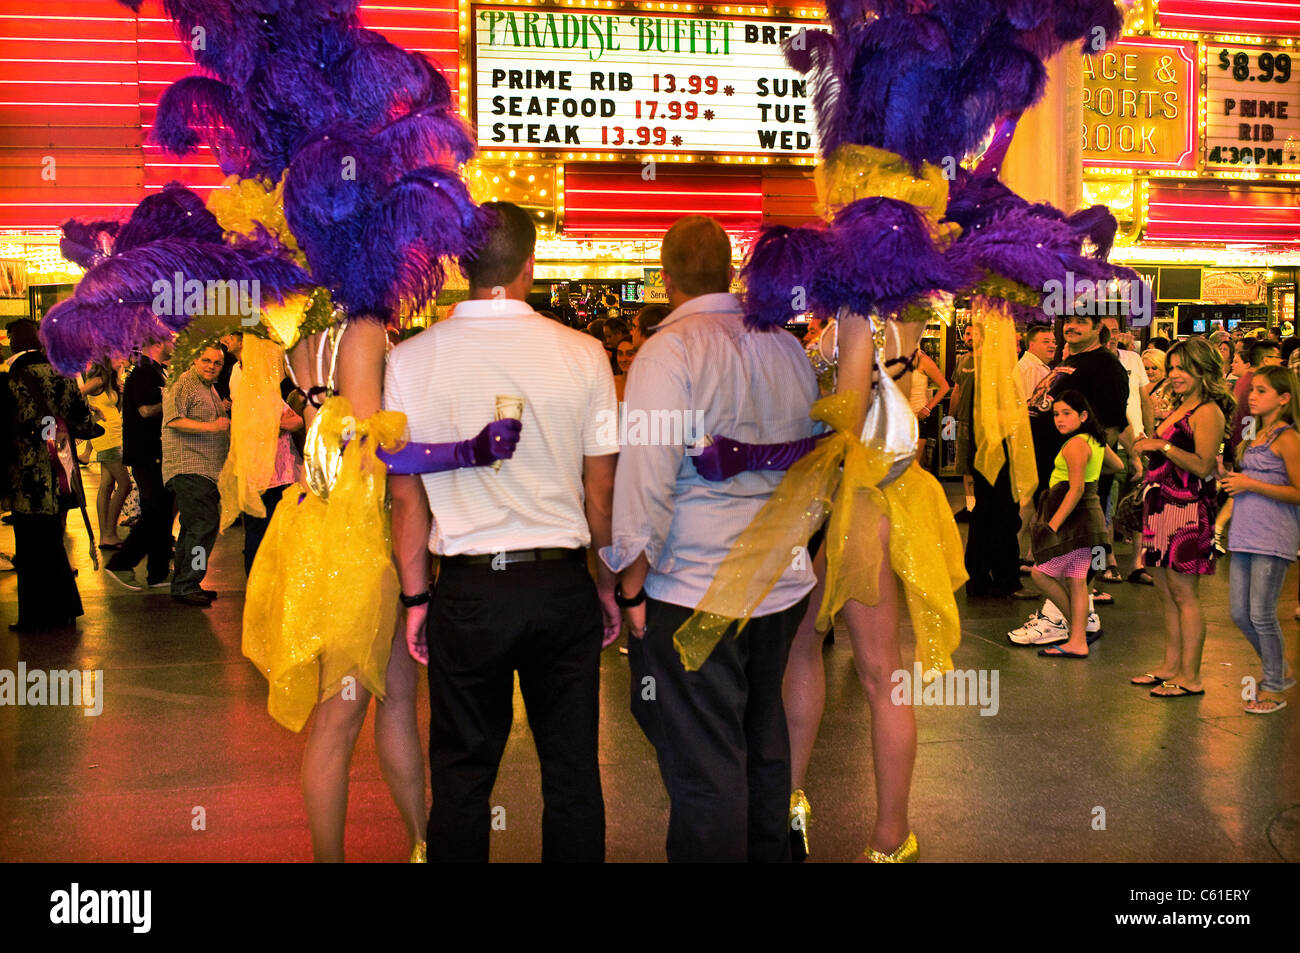 Wondrous Showgirls Fremont Street Downtown Las Vegas Nv Stock Photo Download Free Architecture Designs Crovemadebymaigaardcom